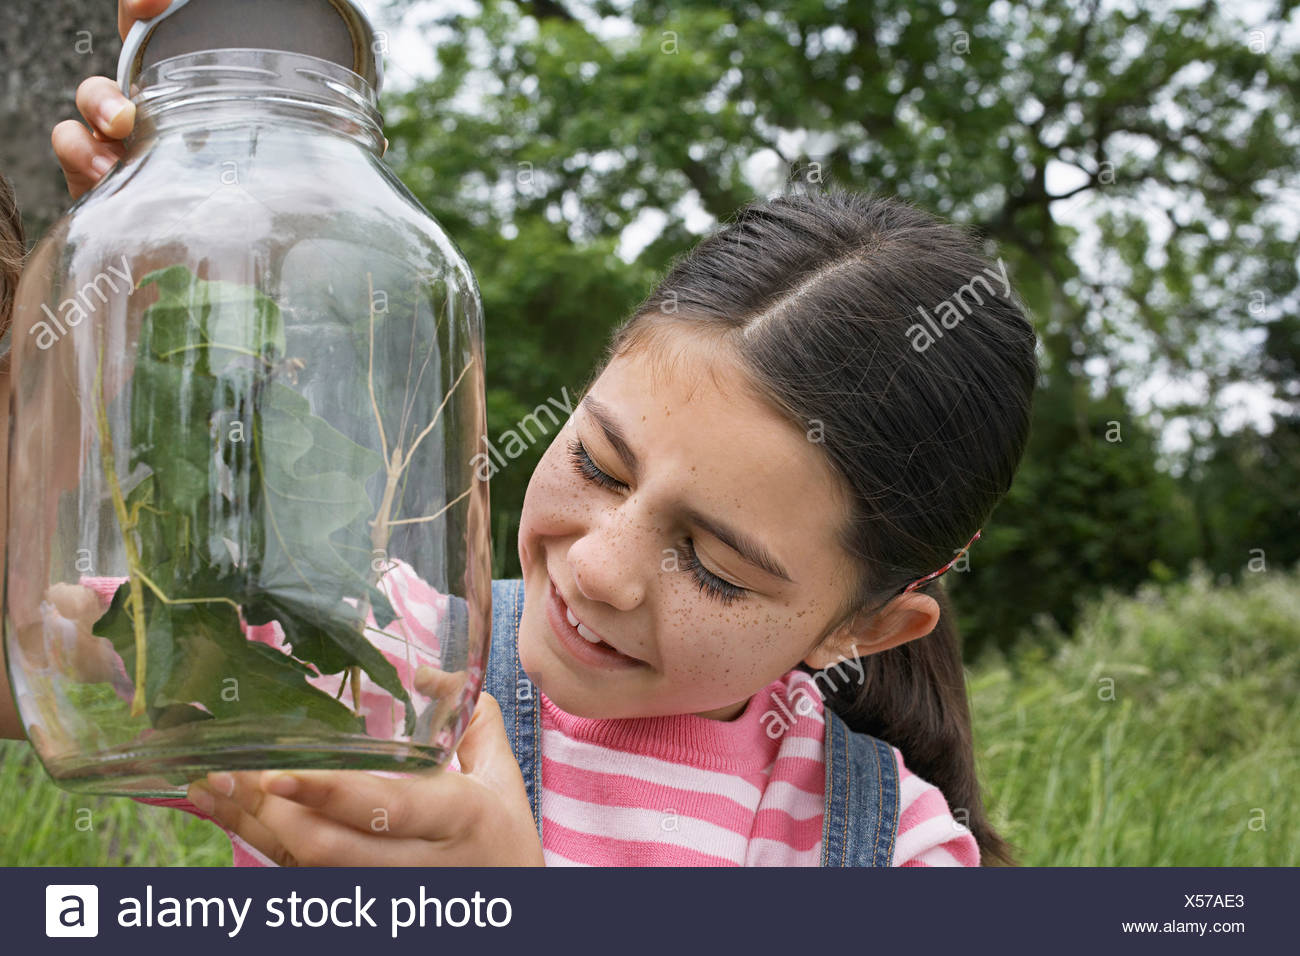 Girl (7-9) with eyes closed, holding jar of stick insects, close-up - Stock Image